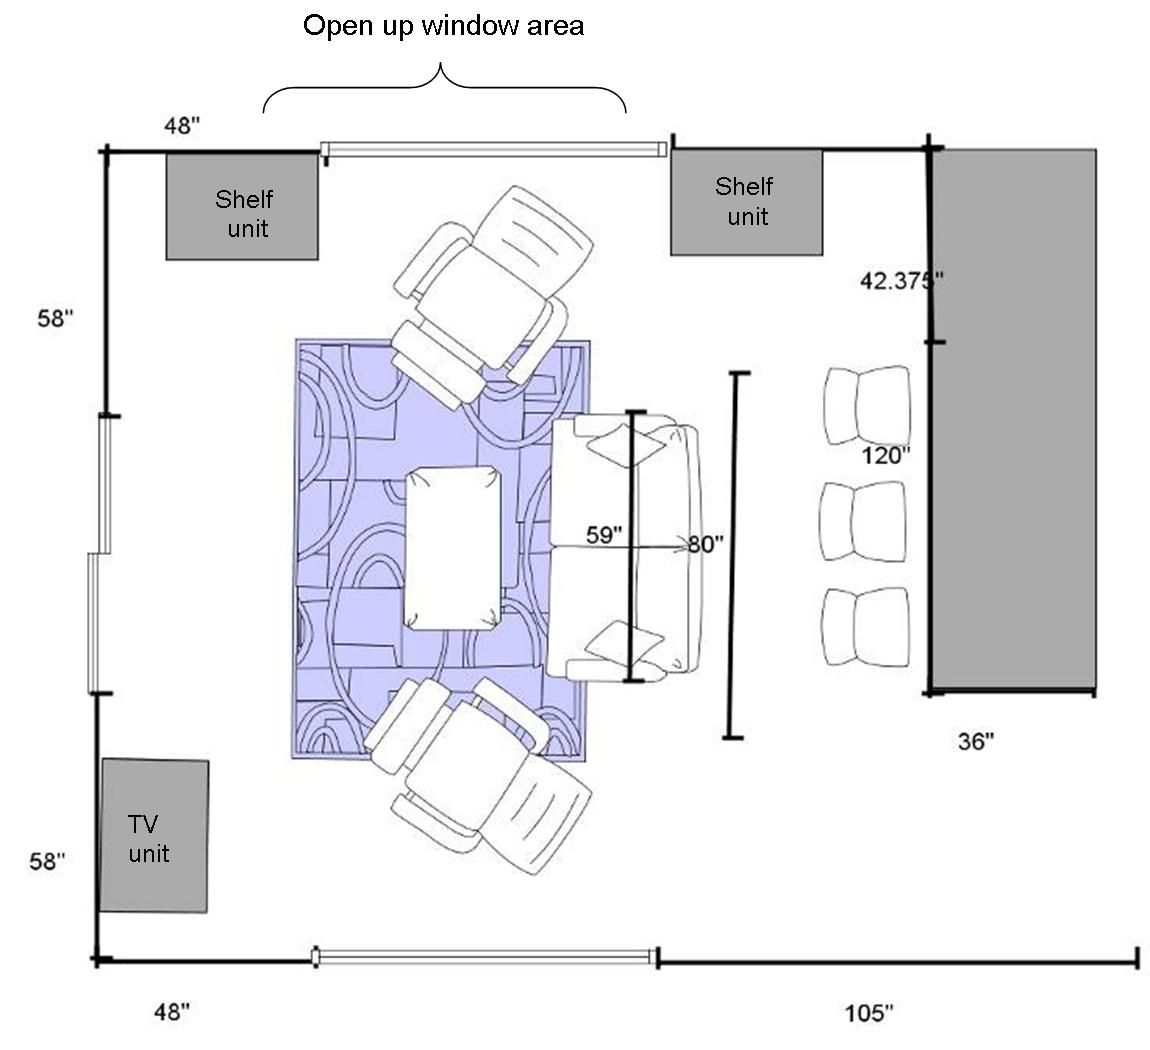 Drawing plans for house addition